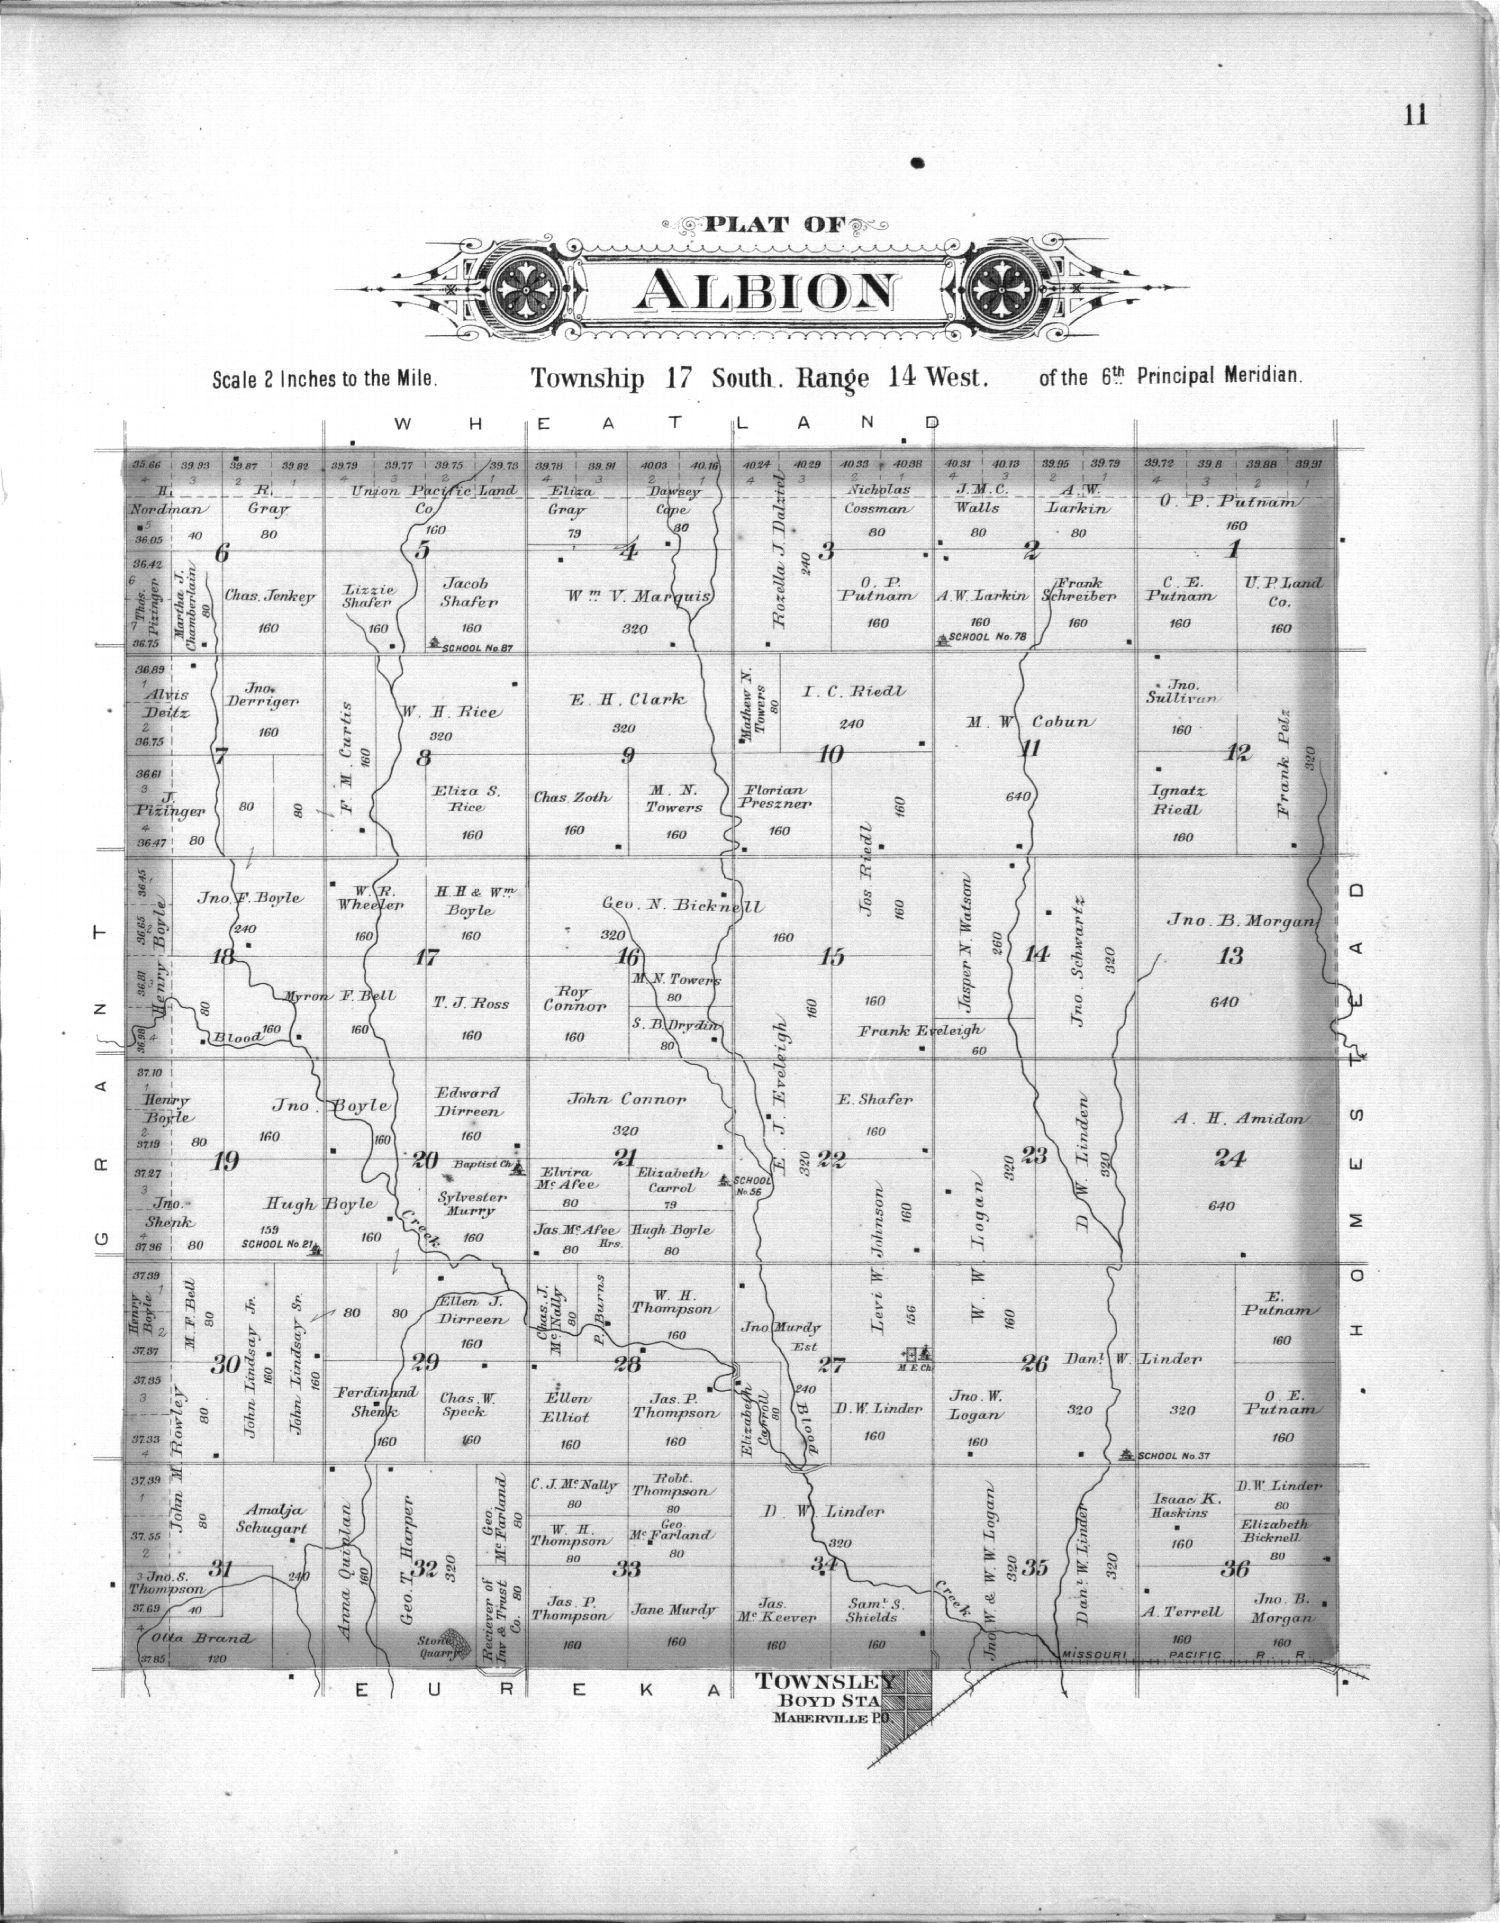 Plat book, Barton County, Kansas - 11